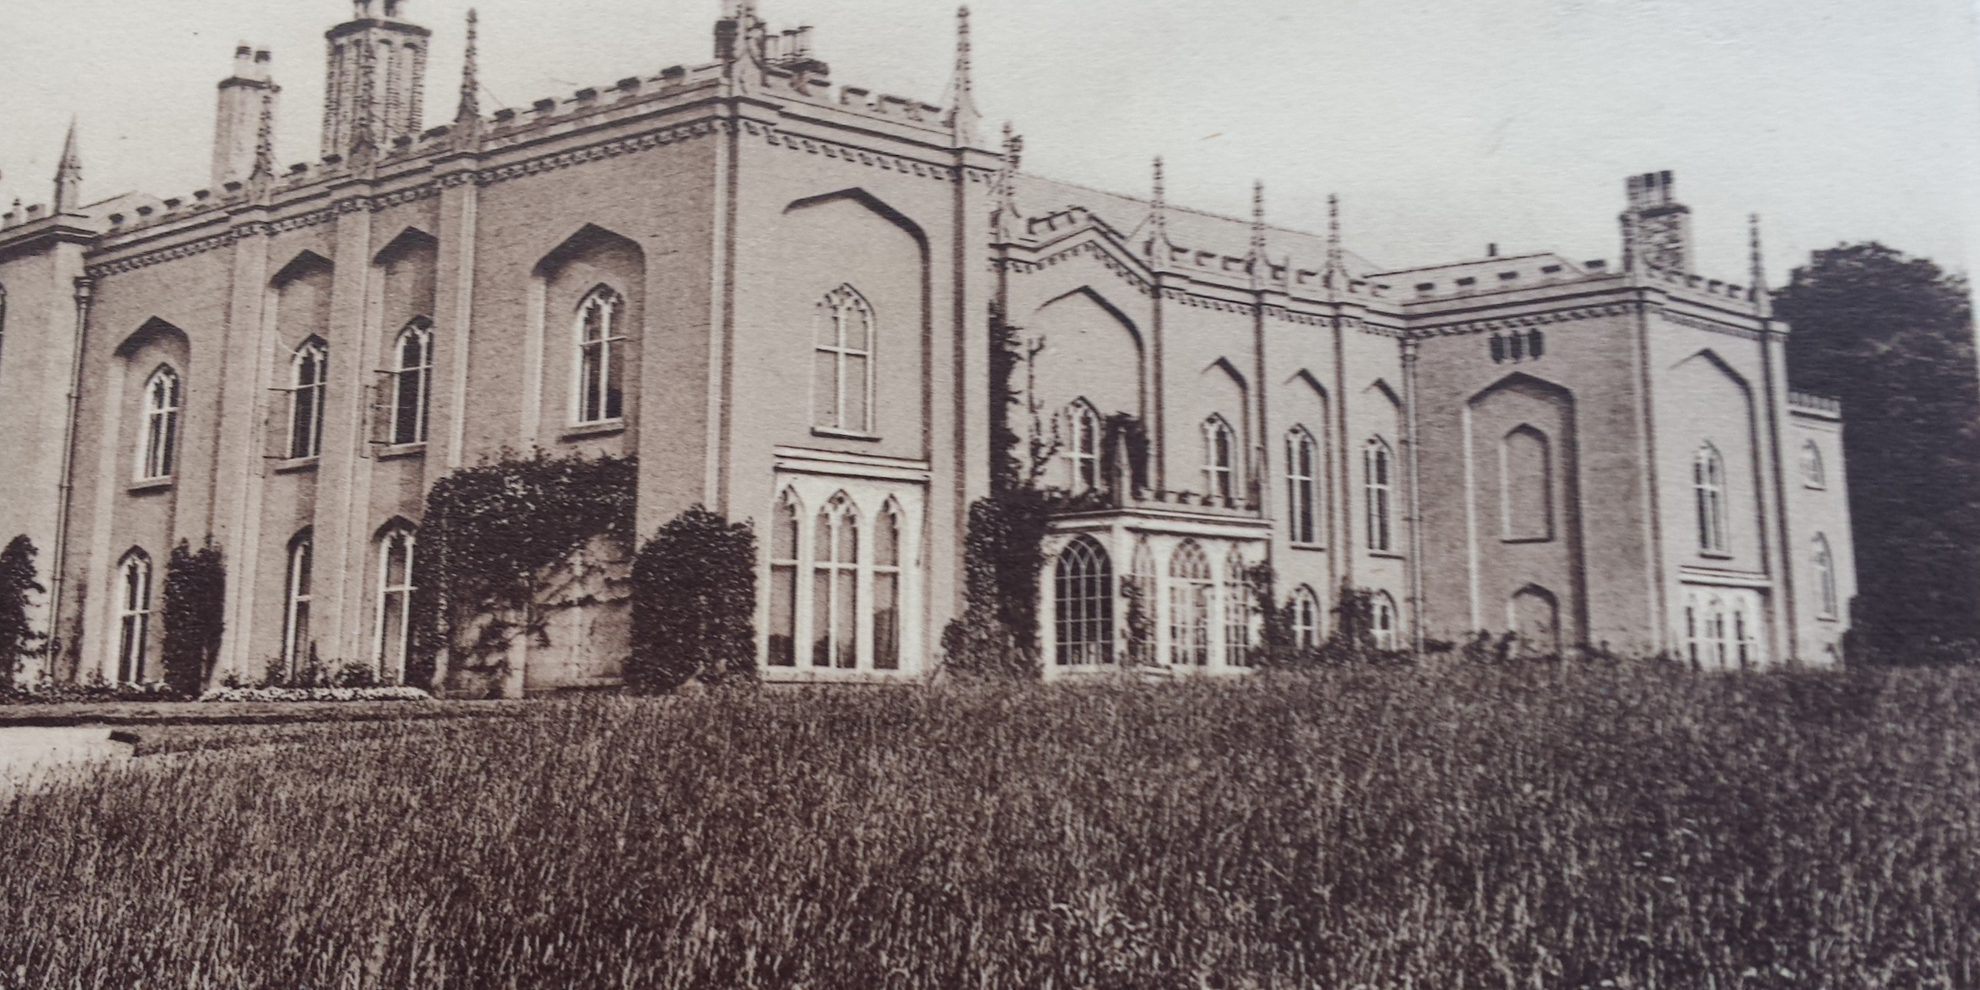 An image from the 1920's showing the magnificent North Wing at Combermere Abbey